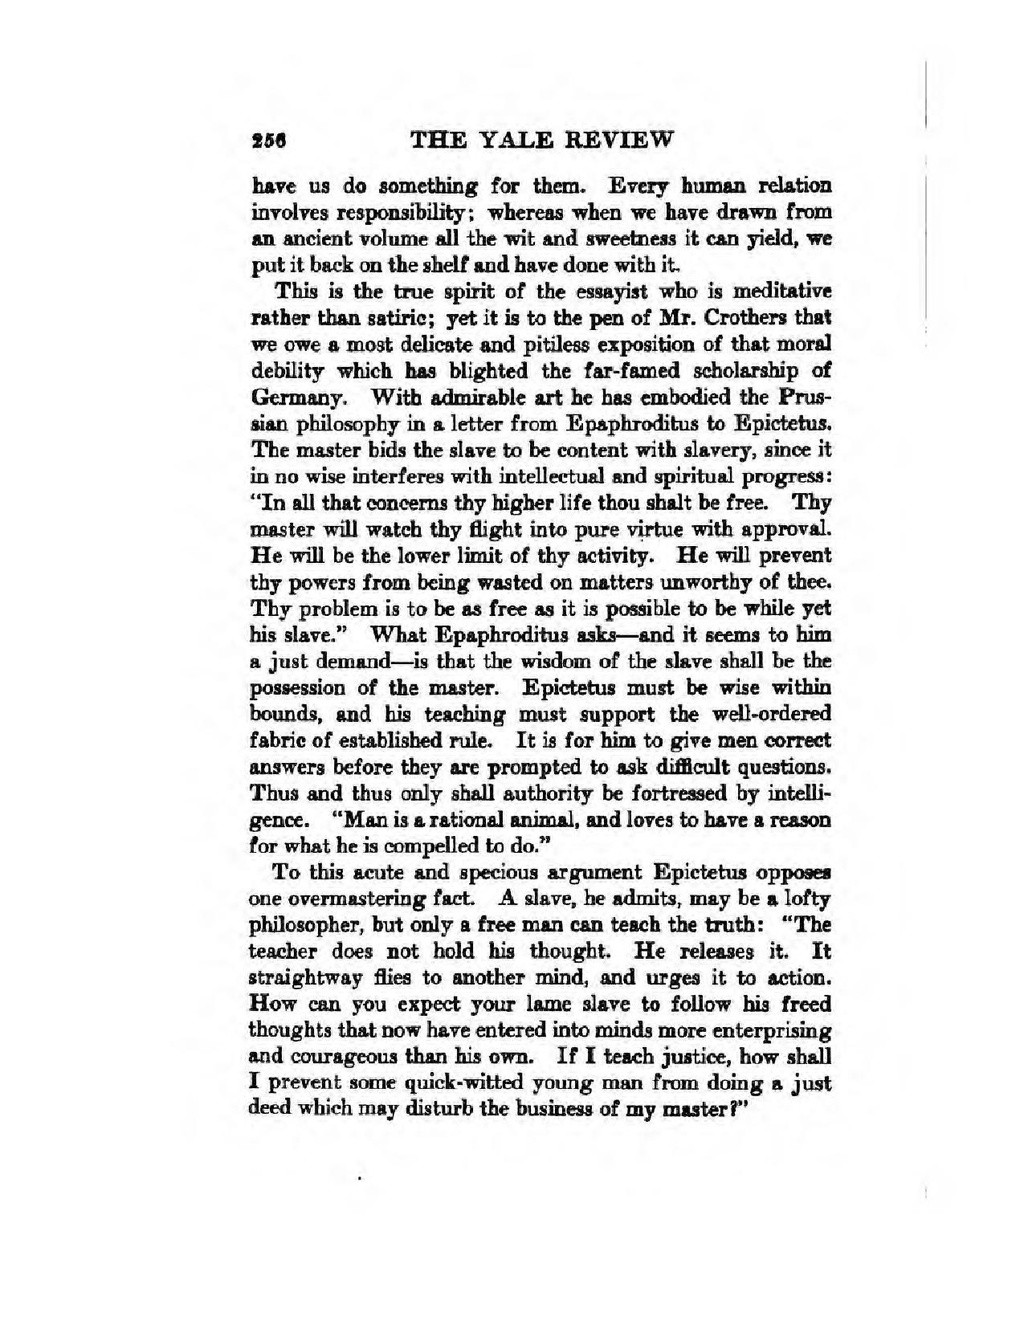 004 Essay Example Page8 1024px The American In War Time Agnes Repplier 1918 Pdf Courage Outstanding Essays Mother And Heroism Moral Examples Large